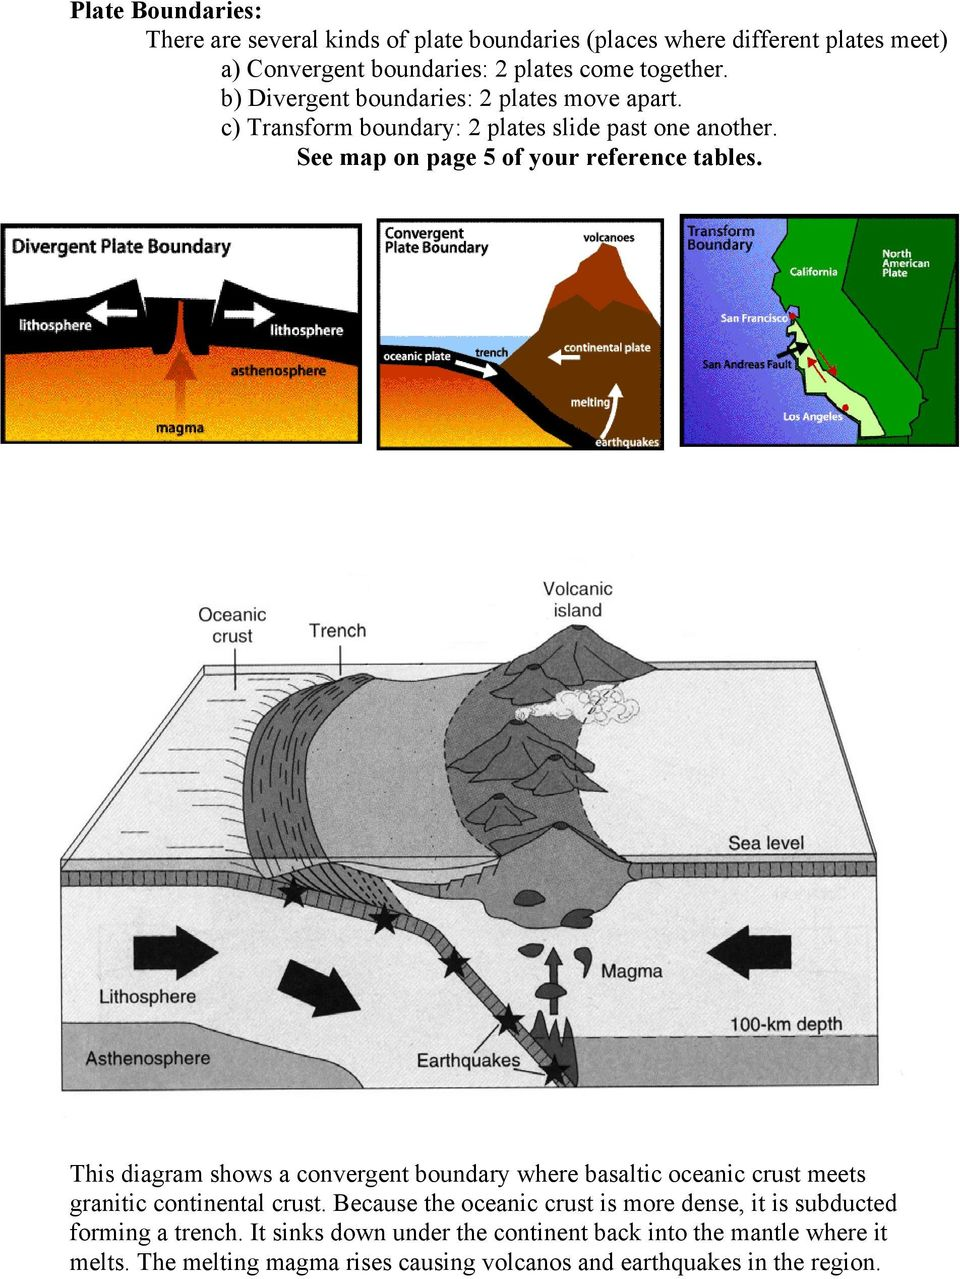 This diagram shows a convergent boundary where basaltic oceanic crust meets granitic continental crust.